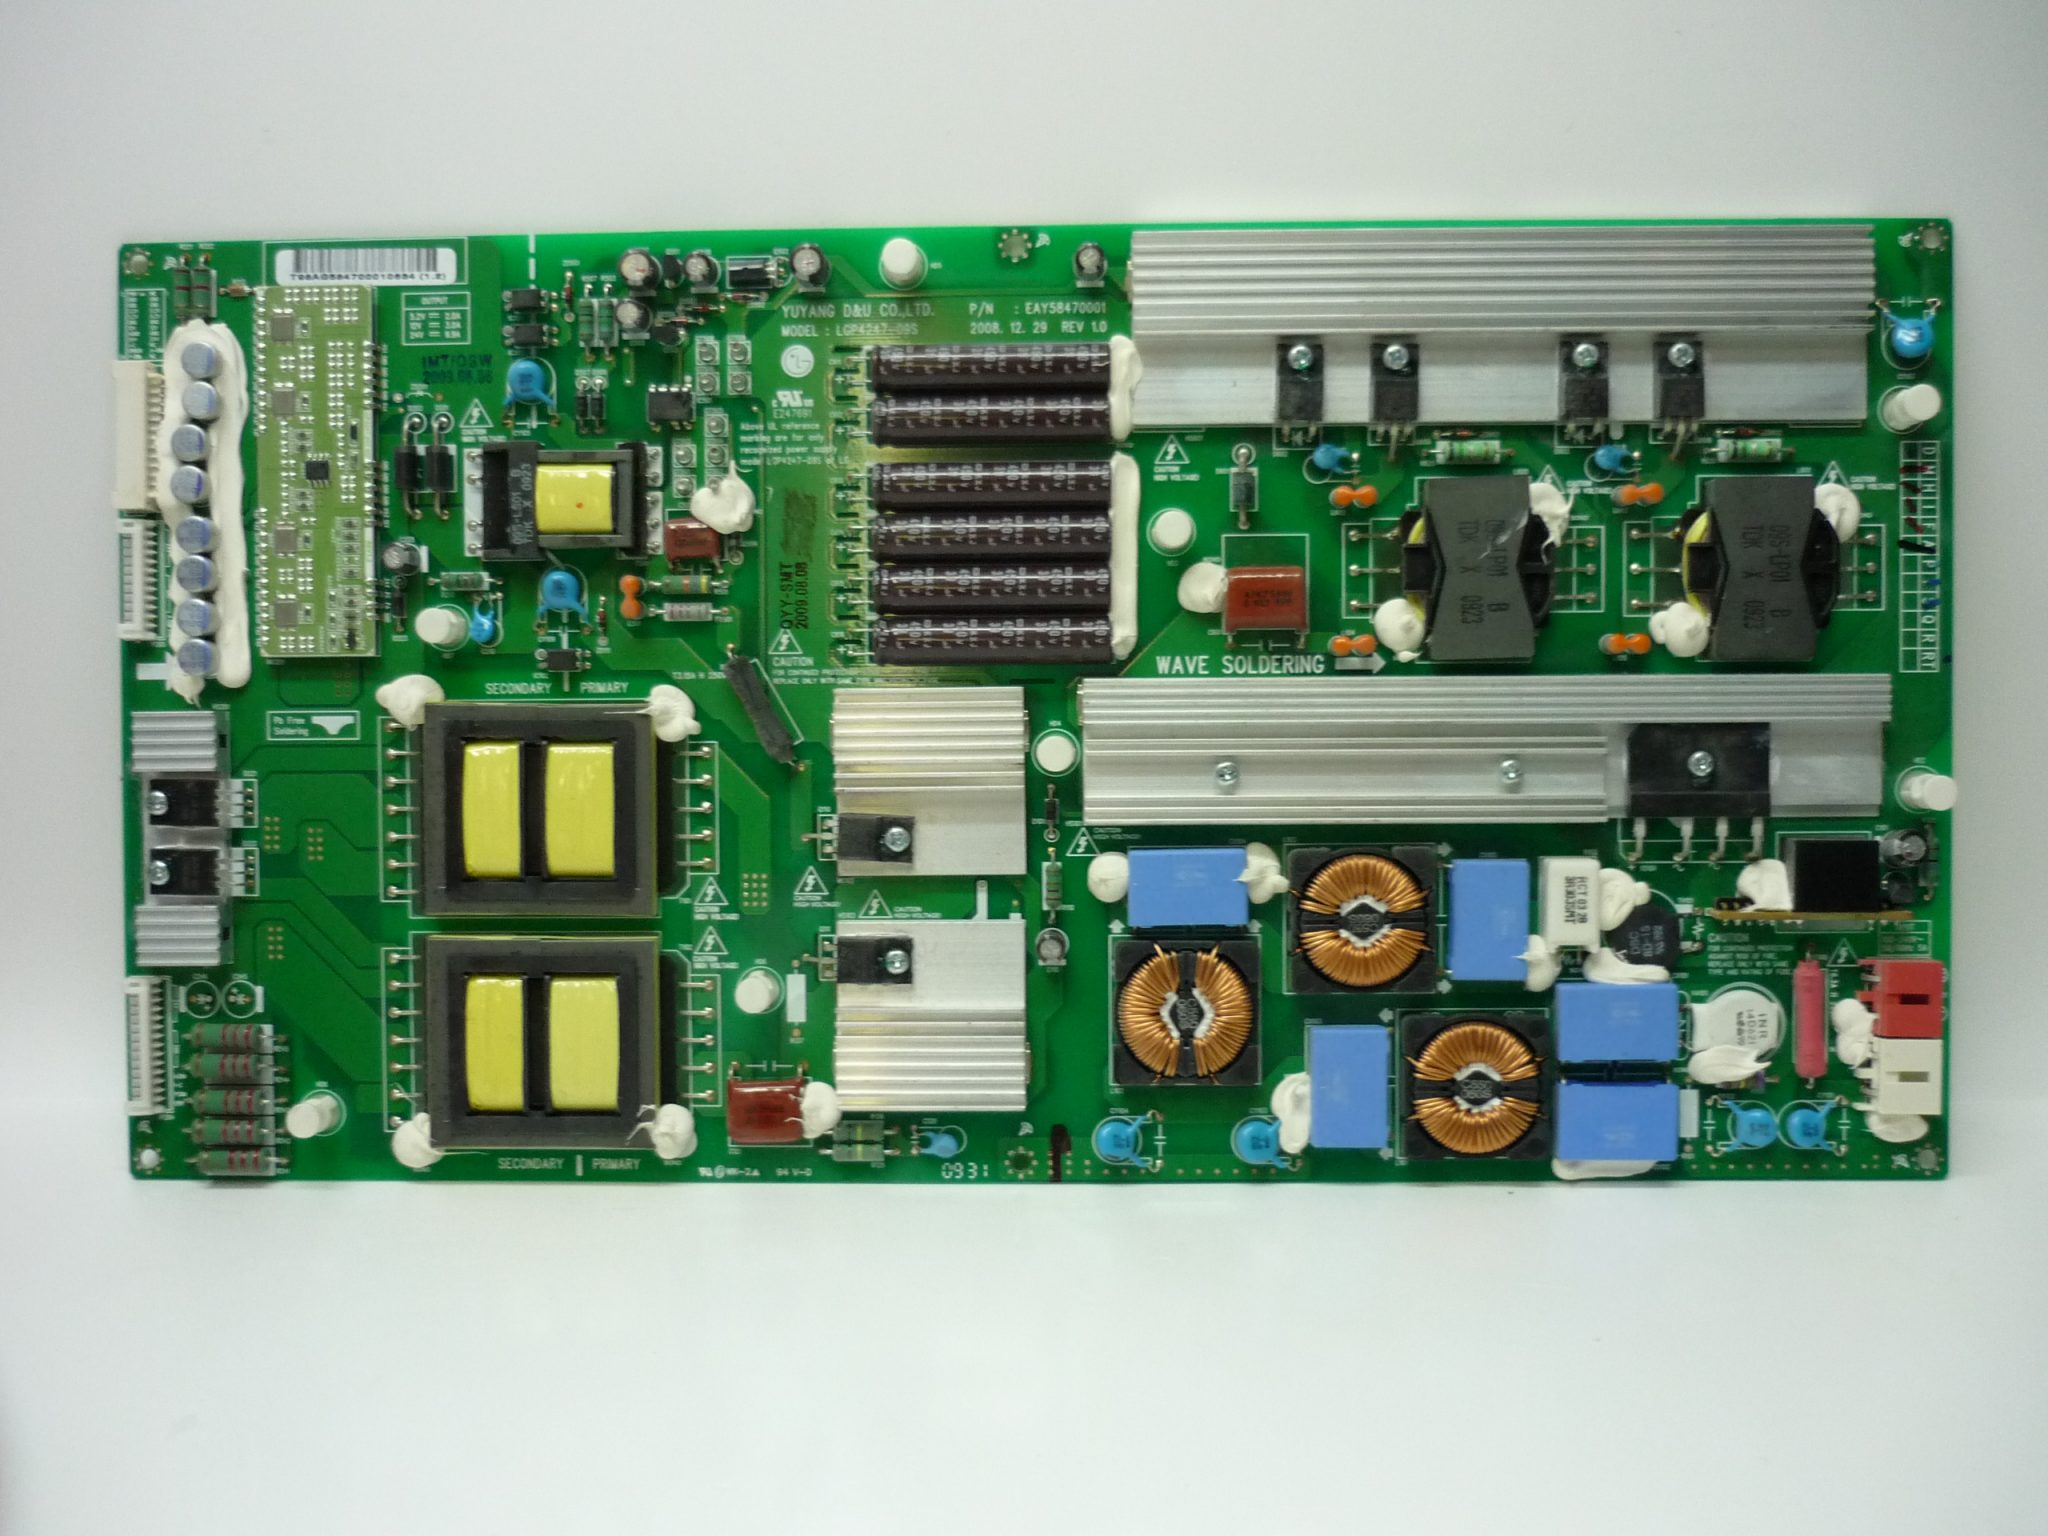 LG EAY58470001 (LGP4247-09S) Power Supply Unit